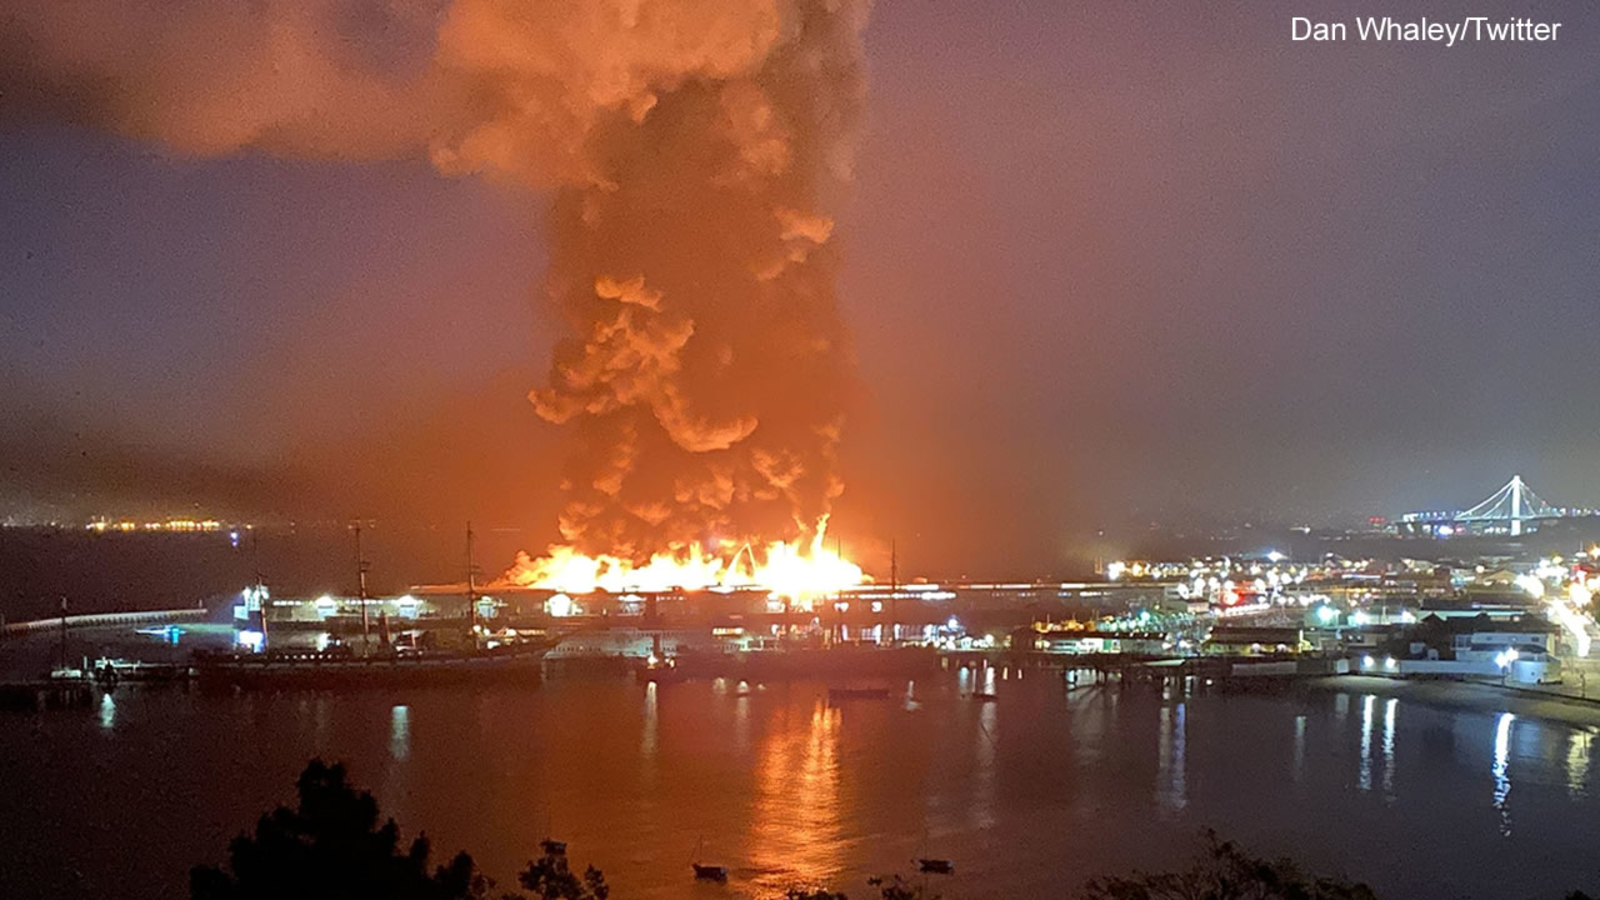 Massive Fire Breaks Out at San Francisco's Iconic Fisherman's Wharf